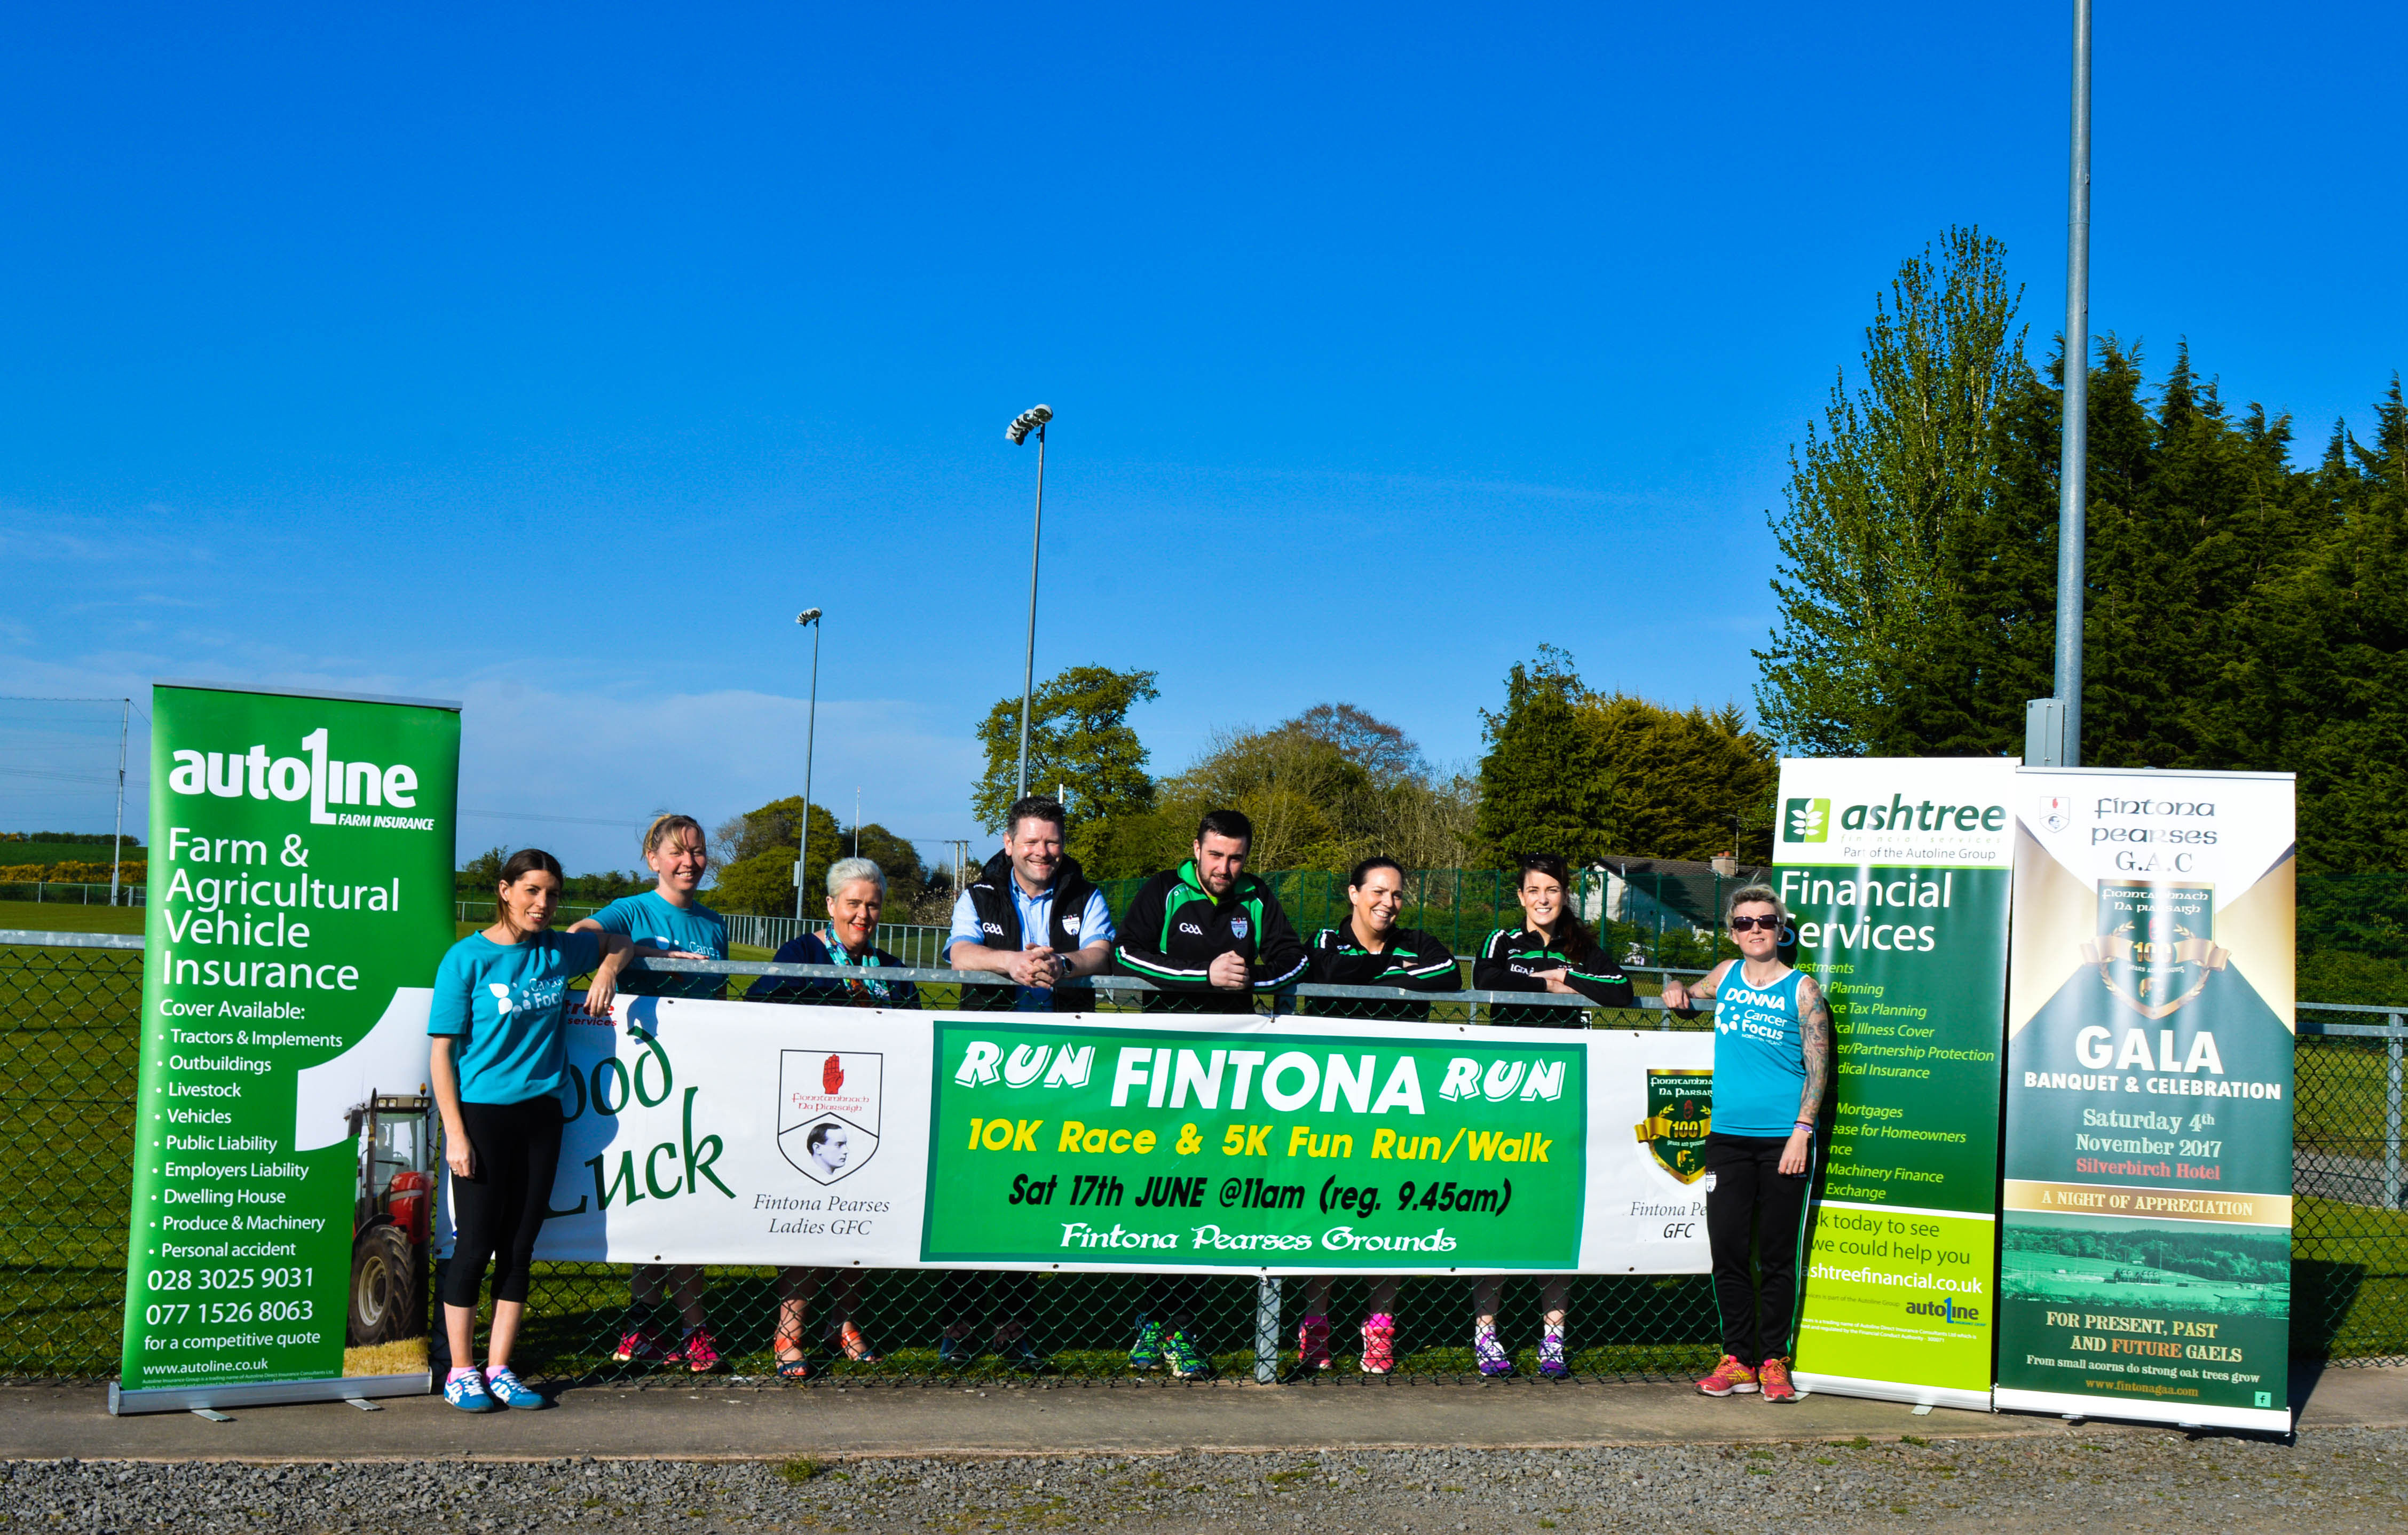 Fintona 10k & 5k Saturday 17th June with Couch to 5k training